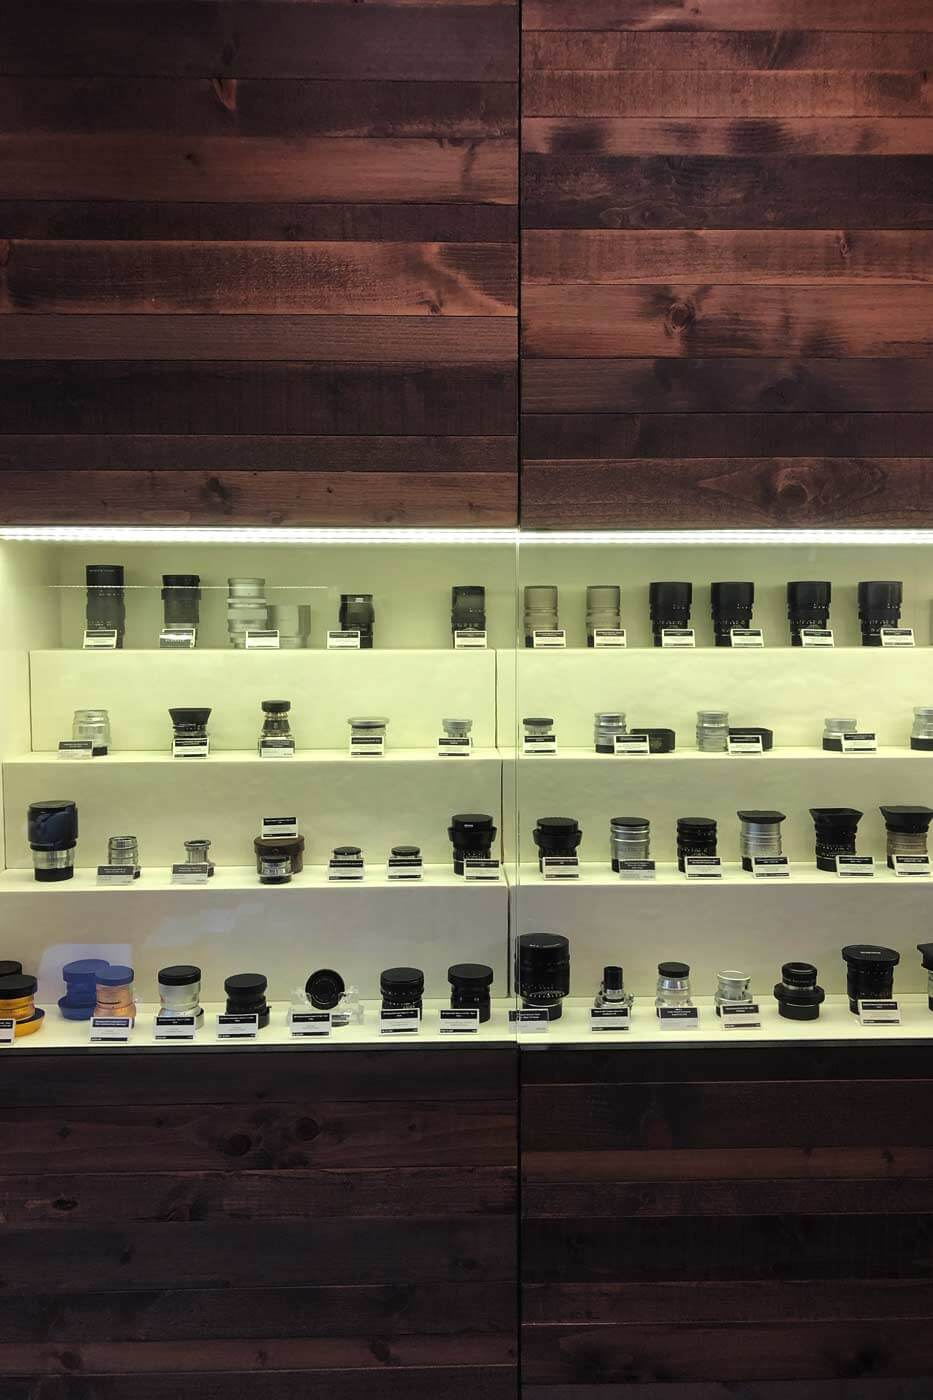 Camera-shop-shops-hong-kong-hk-location-guide-tips-purchase-consignment-second-hand-pre-owned-lenses-cameras-fotopia-display-cabinet-leica-specialist-medium-format